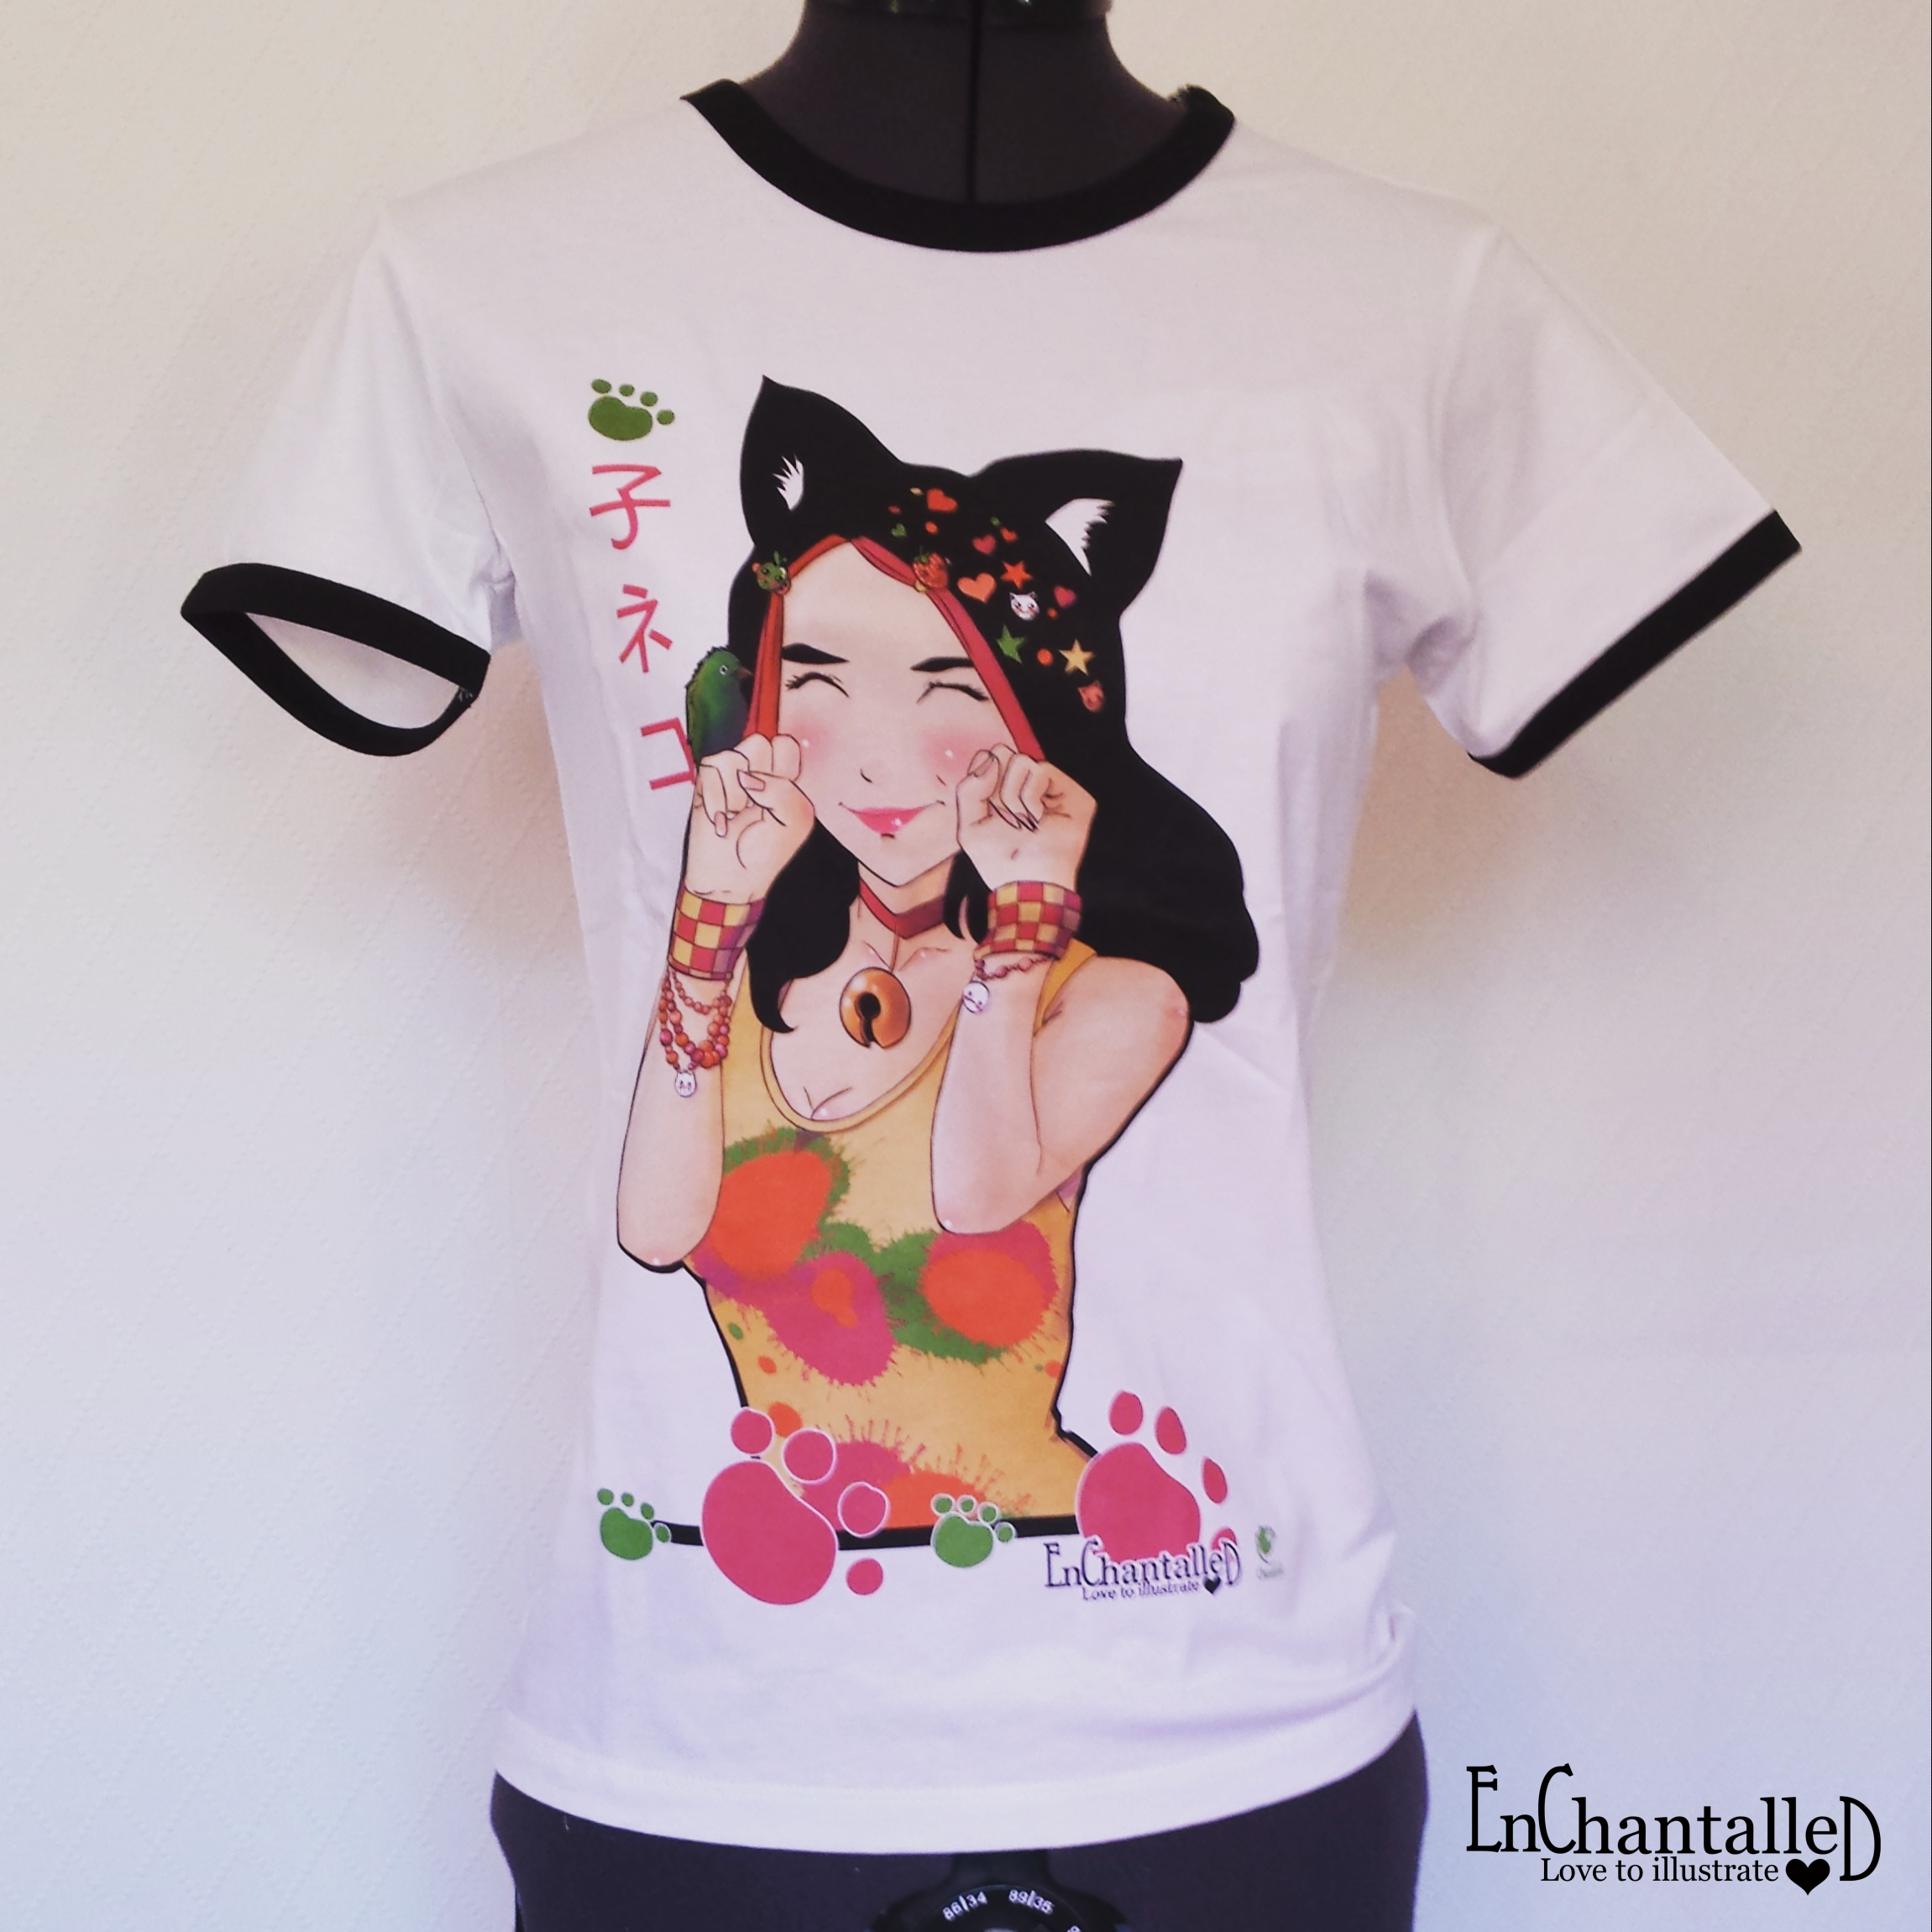 anime t-shirt EnChantalled